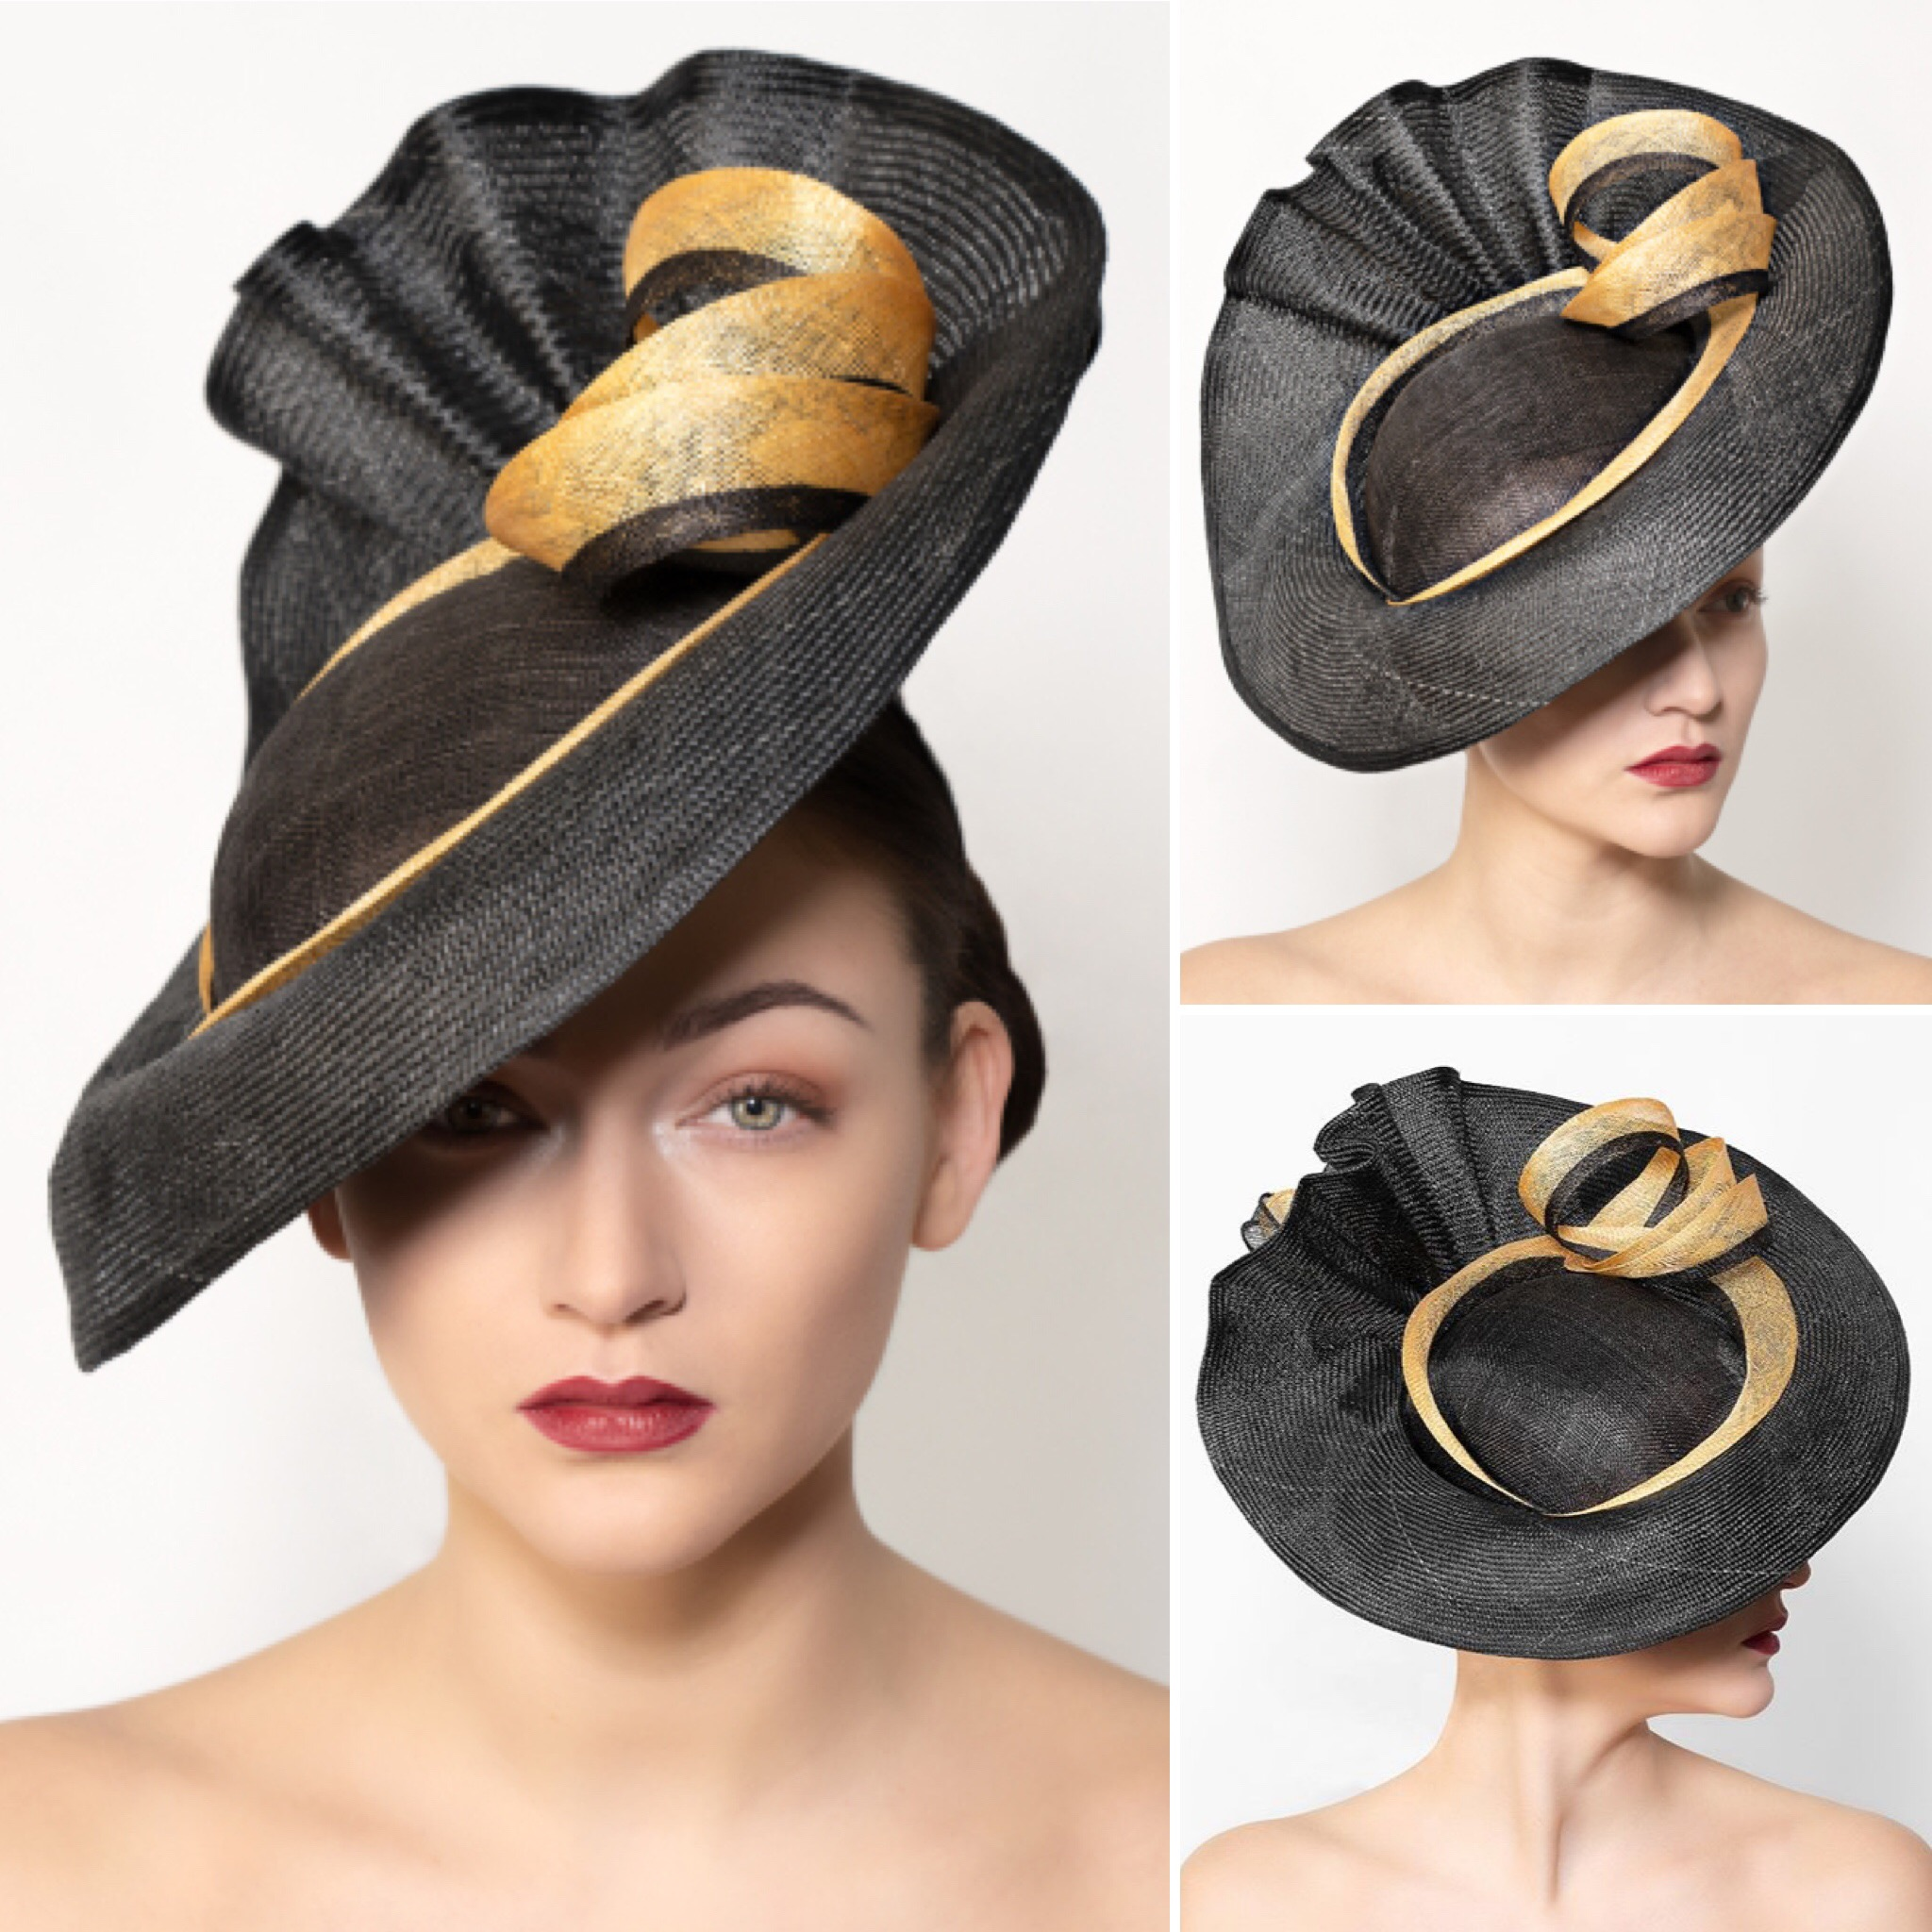 Black and Gold Ascot Hat, created by West Sussex Hat Maker Isabella Josie